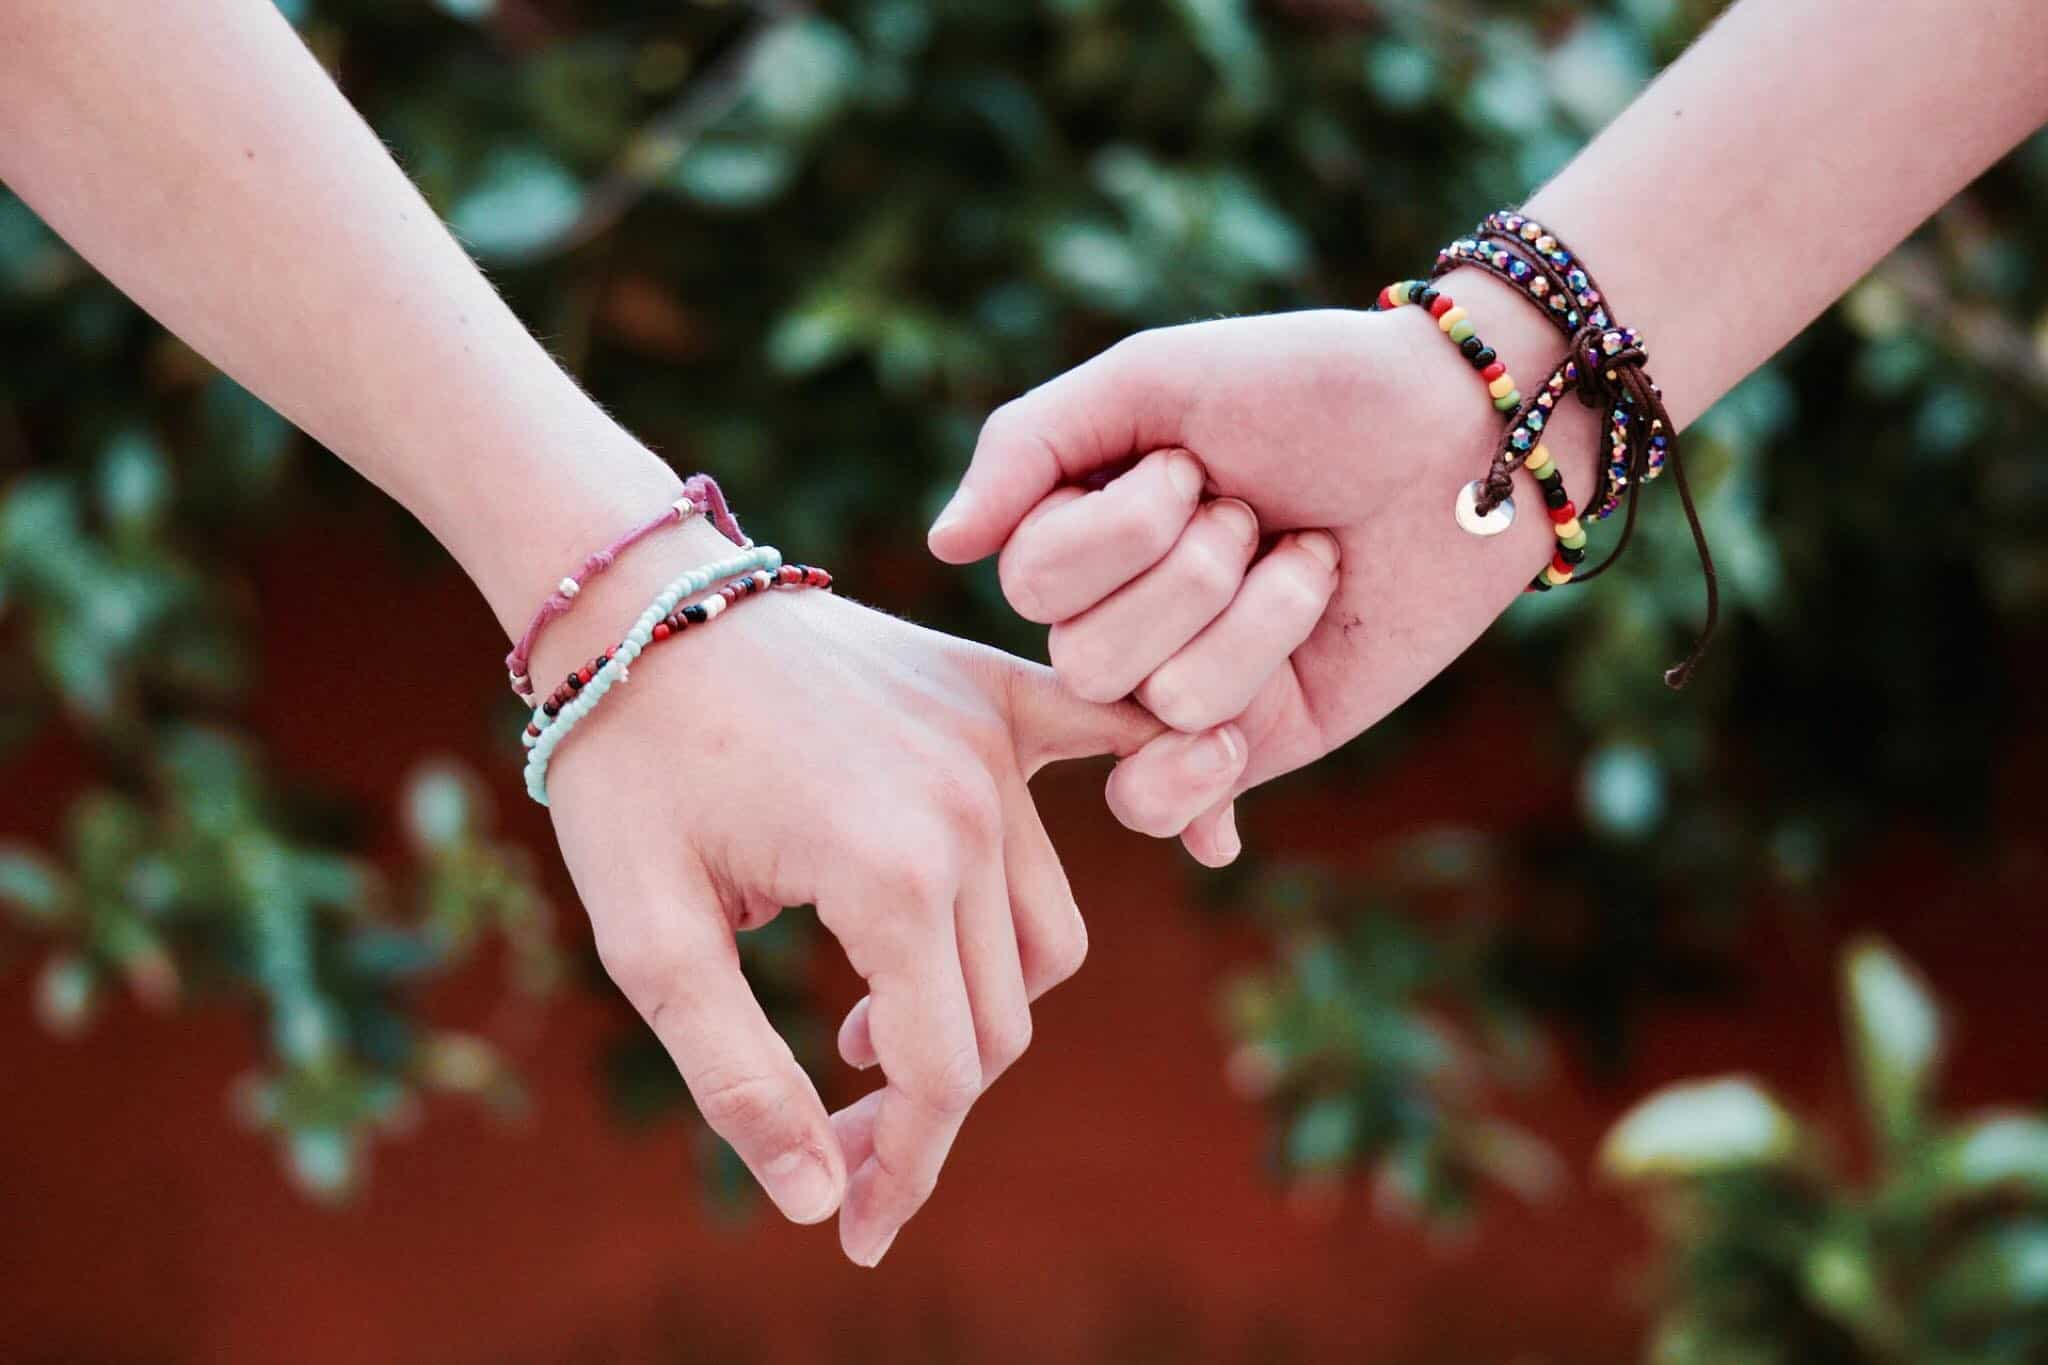 Two people interlocking fingers together in encouragement and kindness.